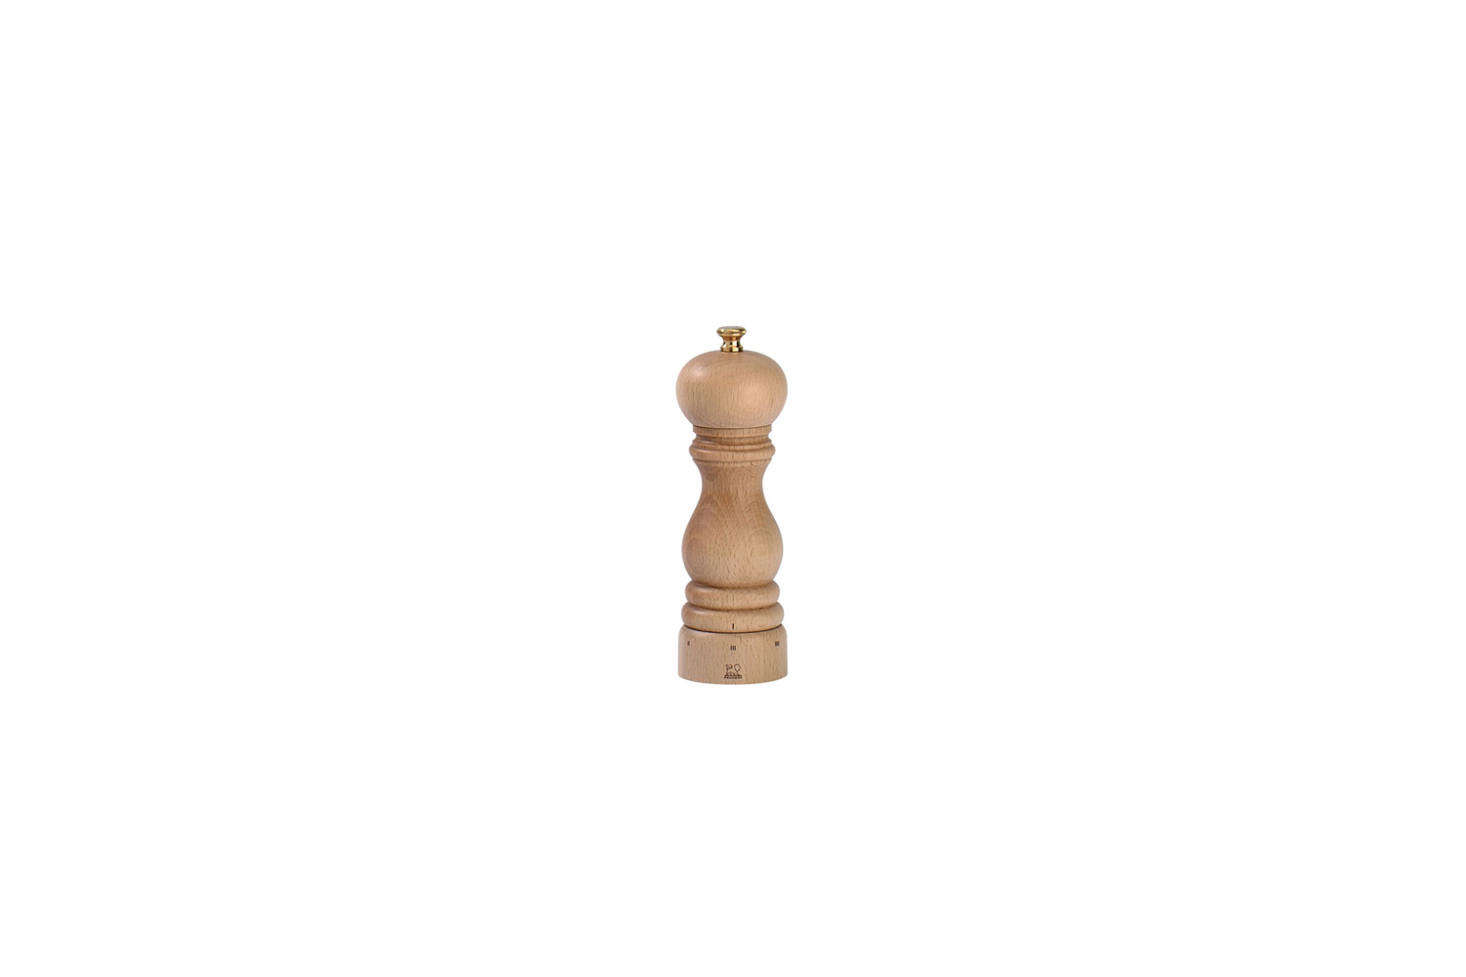 The classic French-madePeugeot Salt and Pepper Shakersare available in five sizes (shown here in 5 inches) and starts at $37 for the salt or pepper mill. A set in the 5-inch size costs $74 from Williams Sonoma.